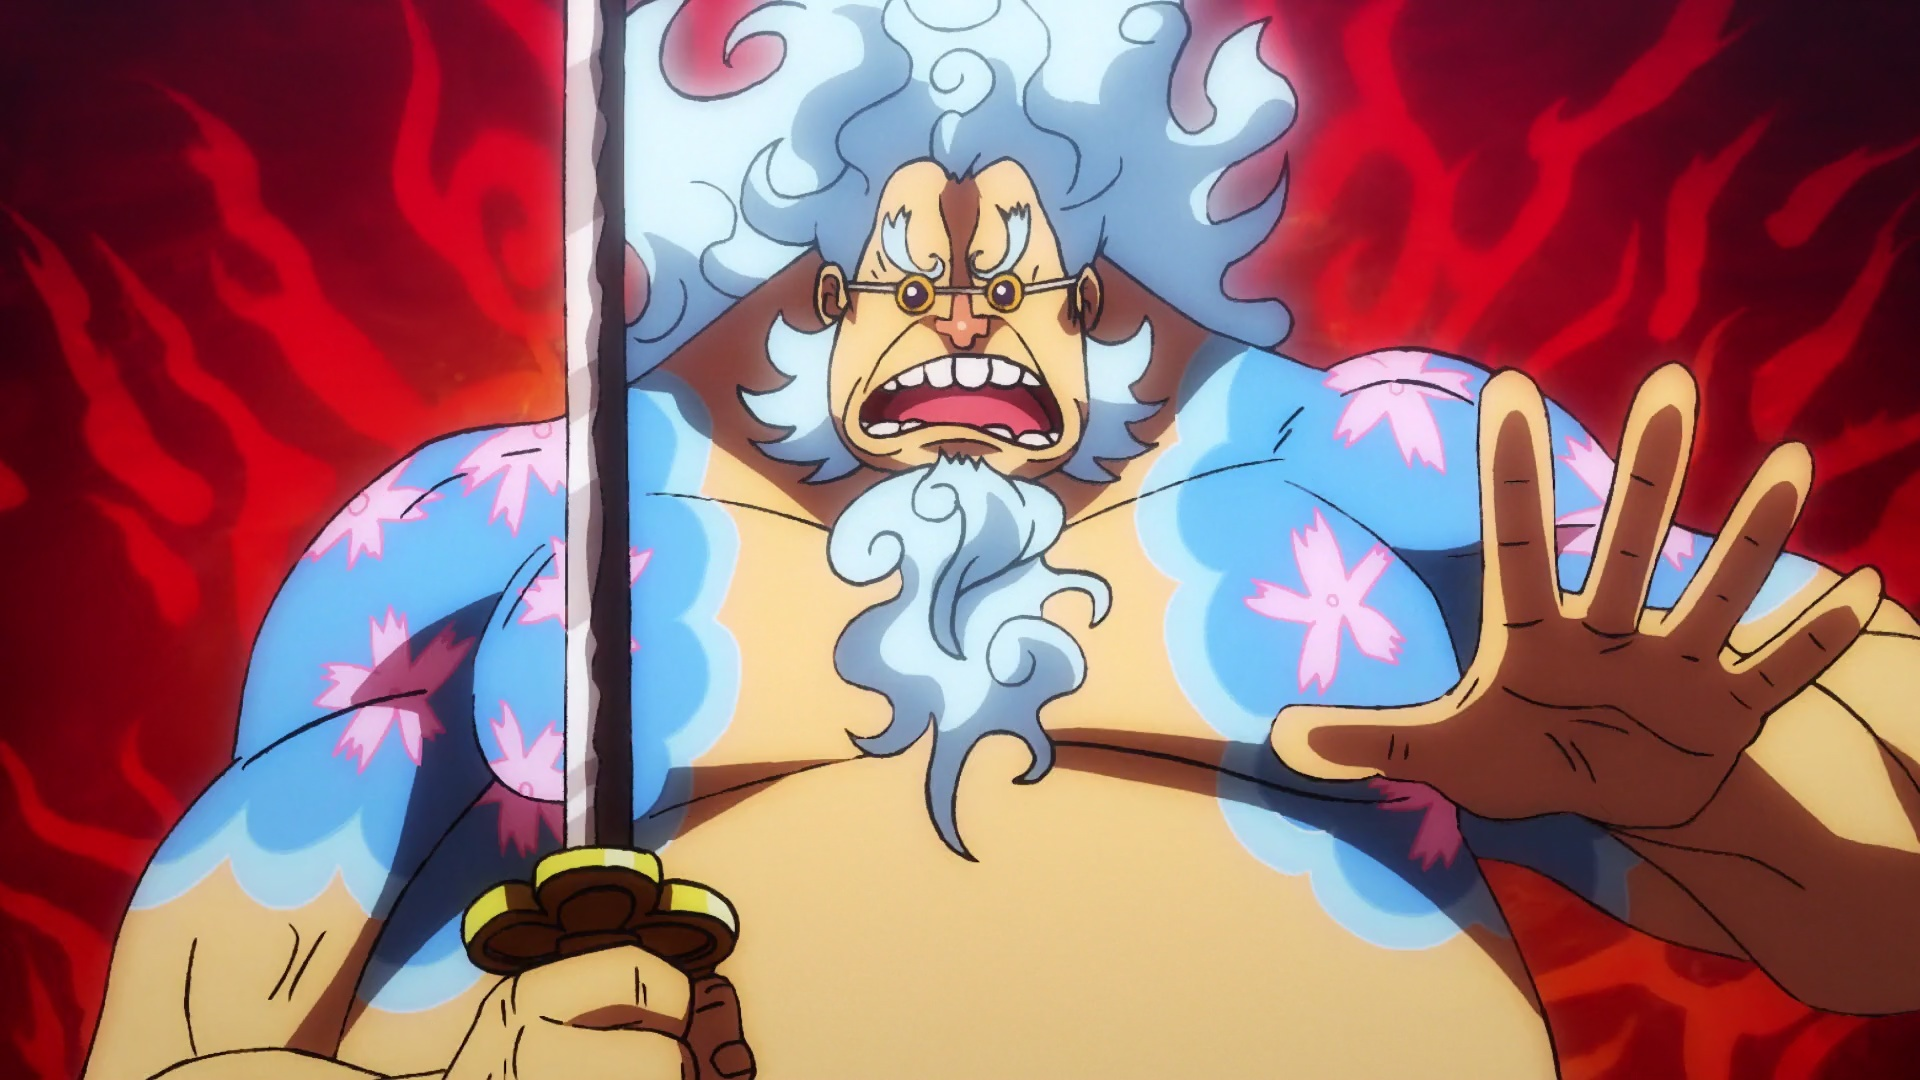 ONE PIECE 932 VOSTFR SD/HD/HD 10BITS/FHD News background